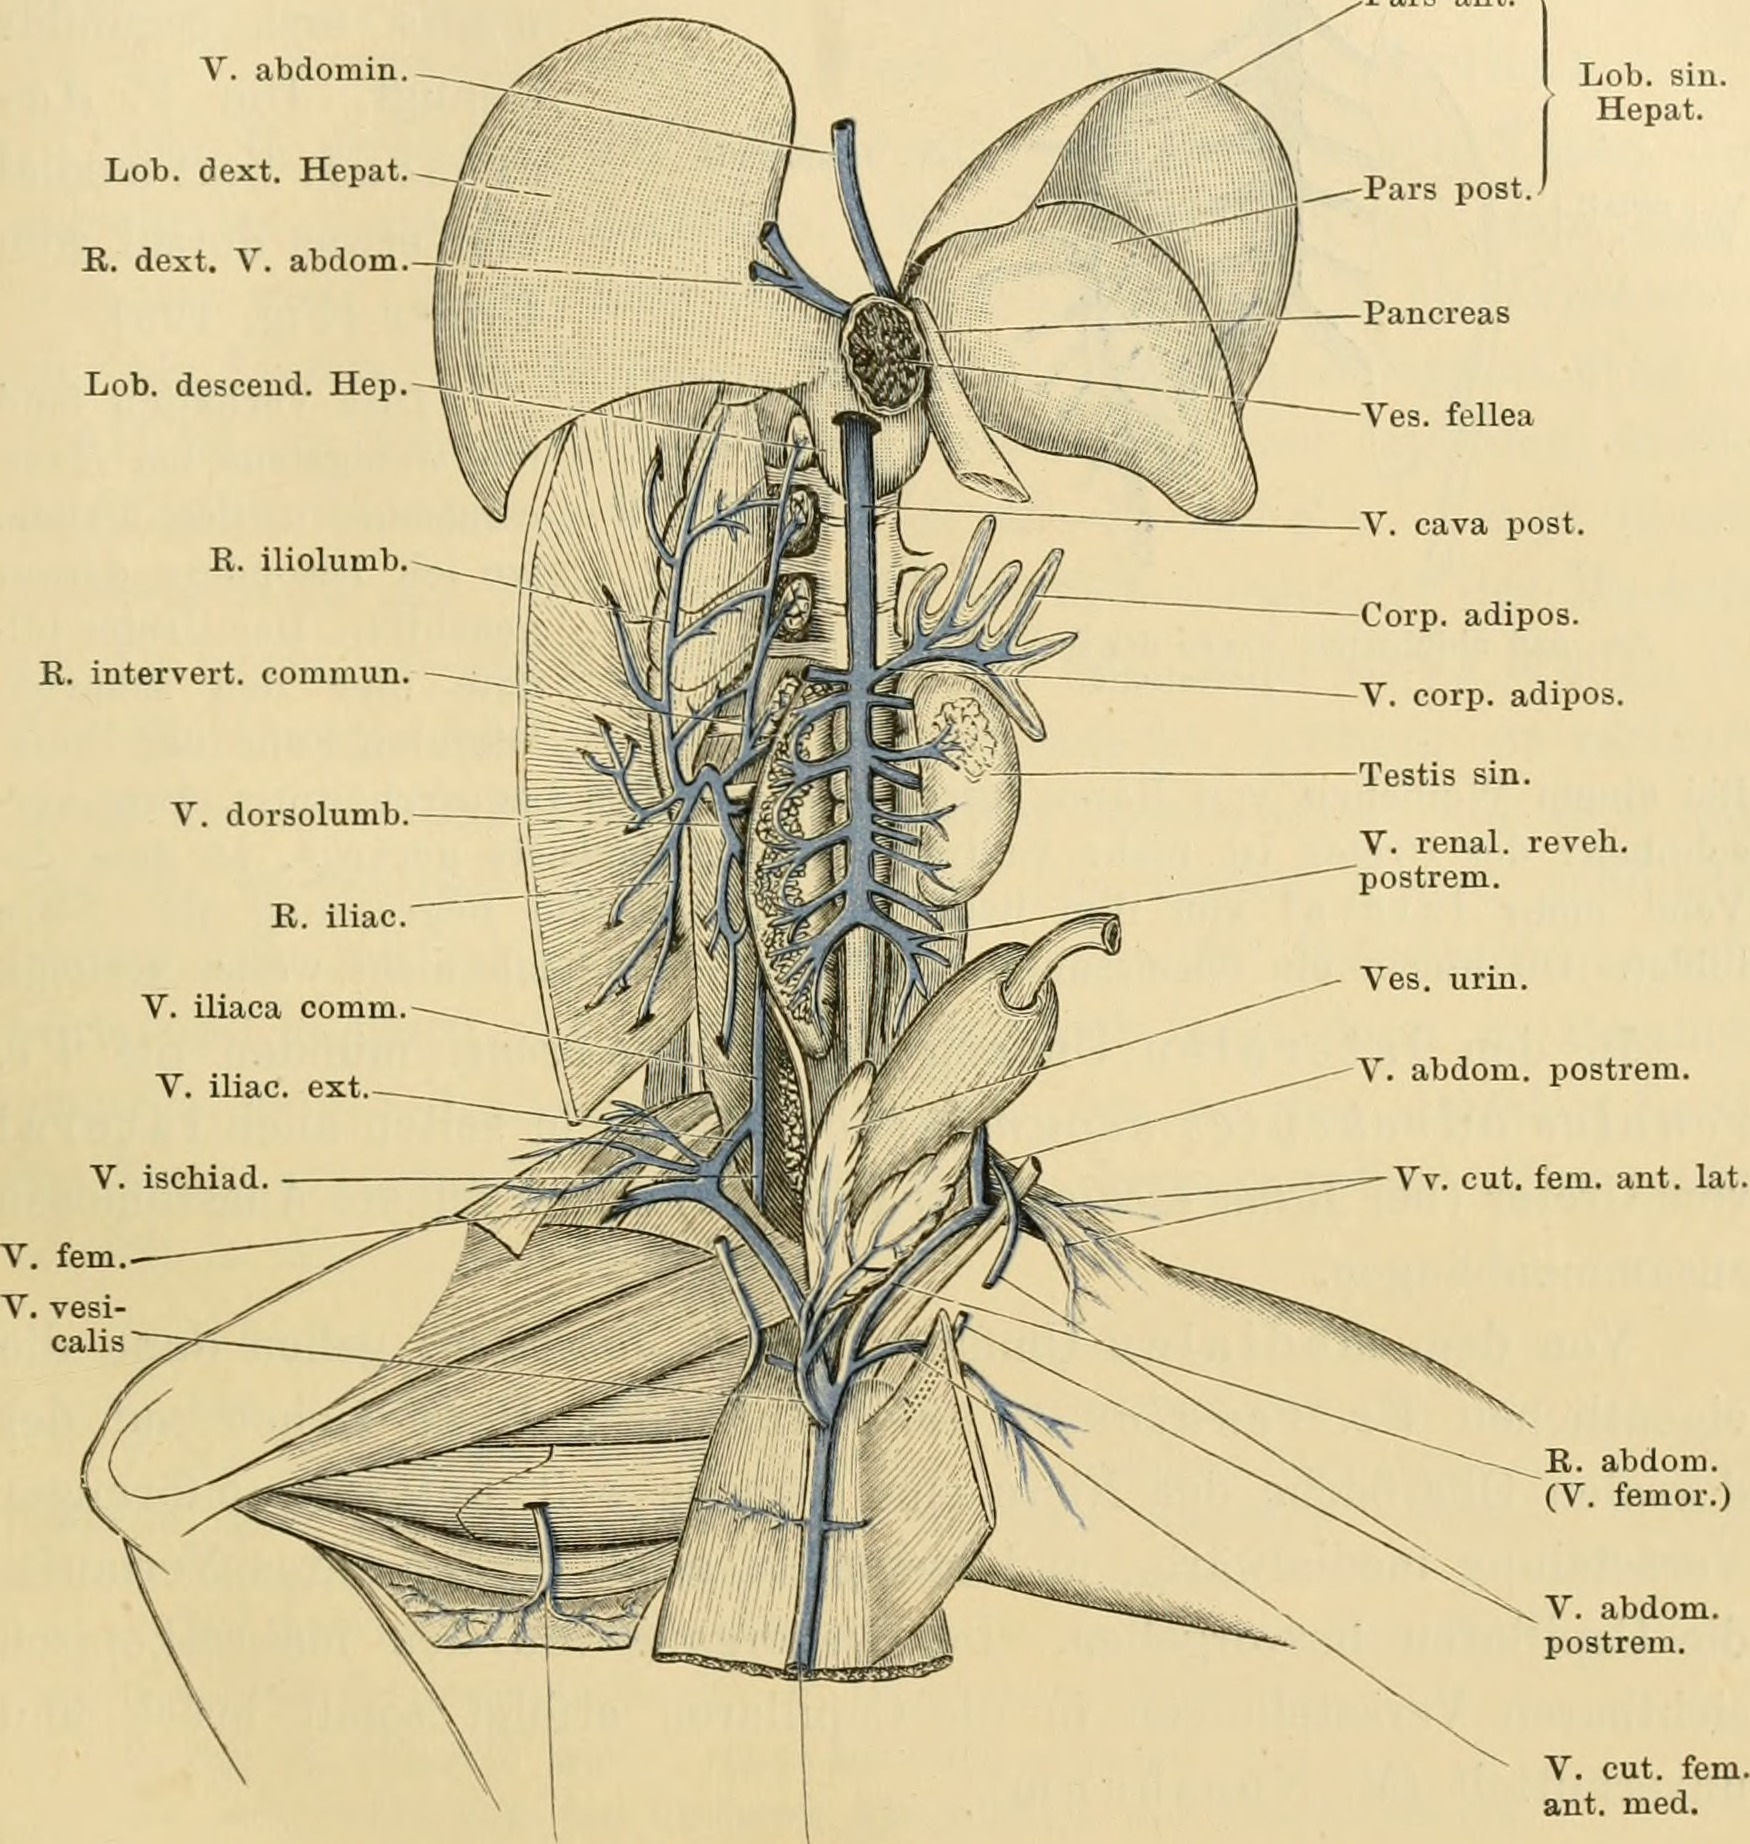 File:Anatomie des Frosches (1899) (18144751596).jpg - Wikimedia Commons